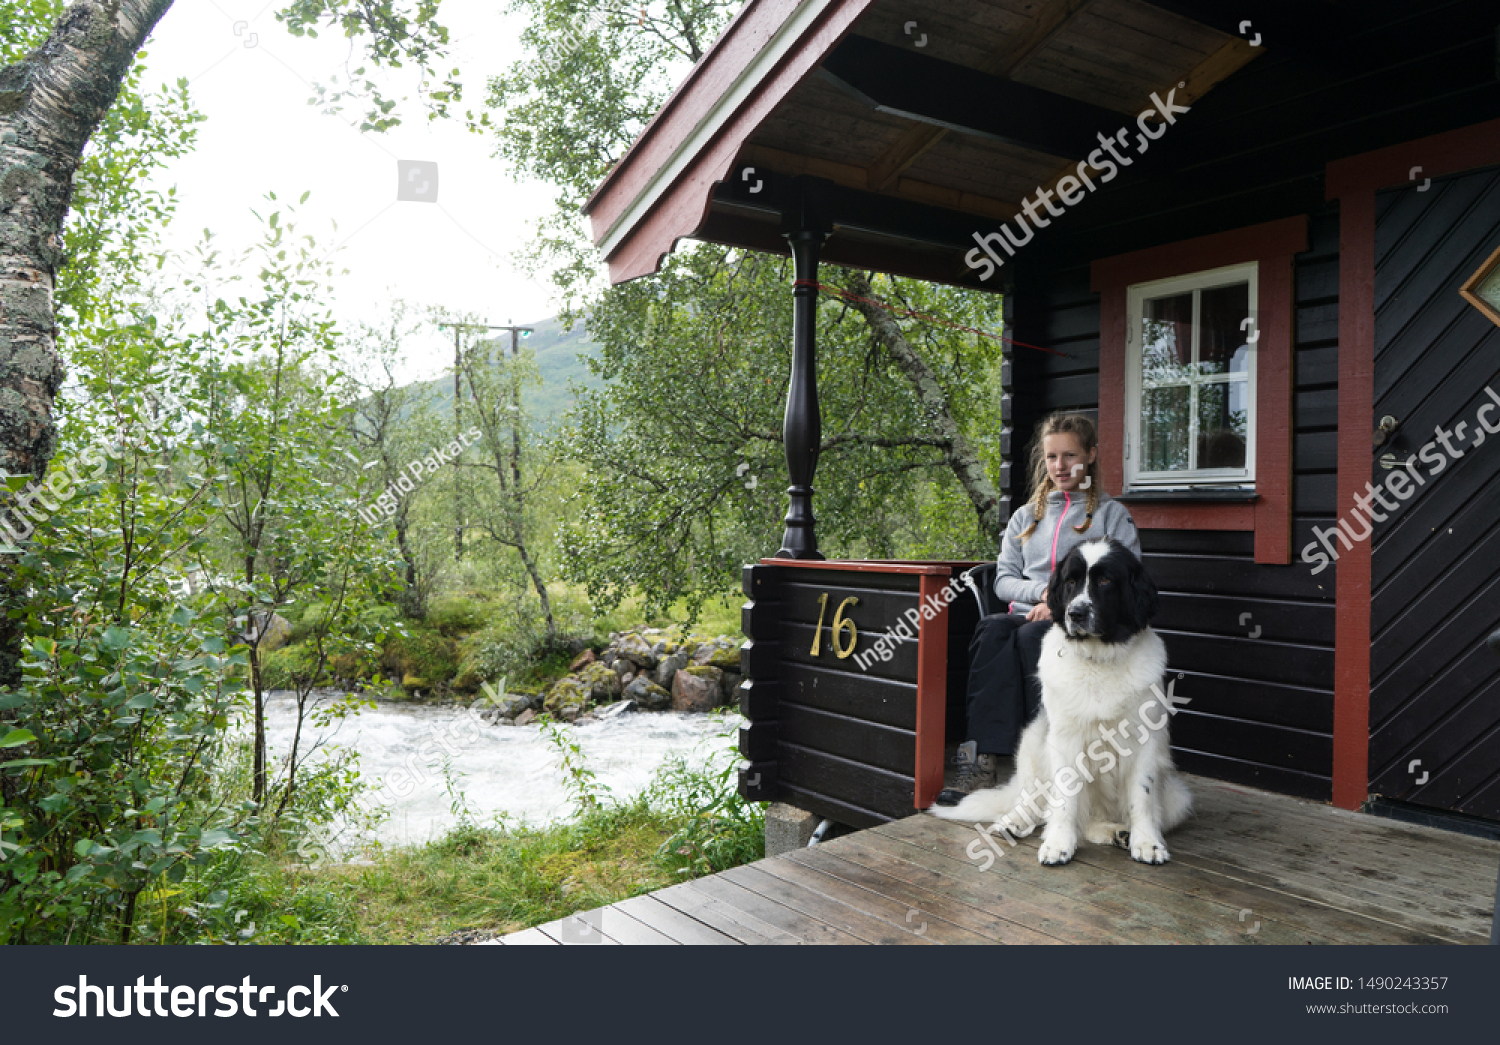 Gullesfjord Norway August 22 2018 Girl Royalty Free Stock Image